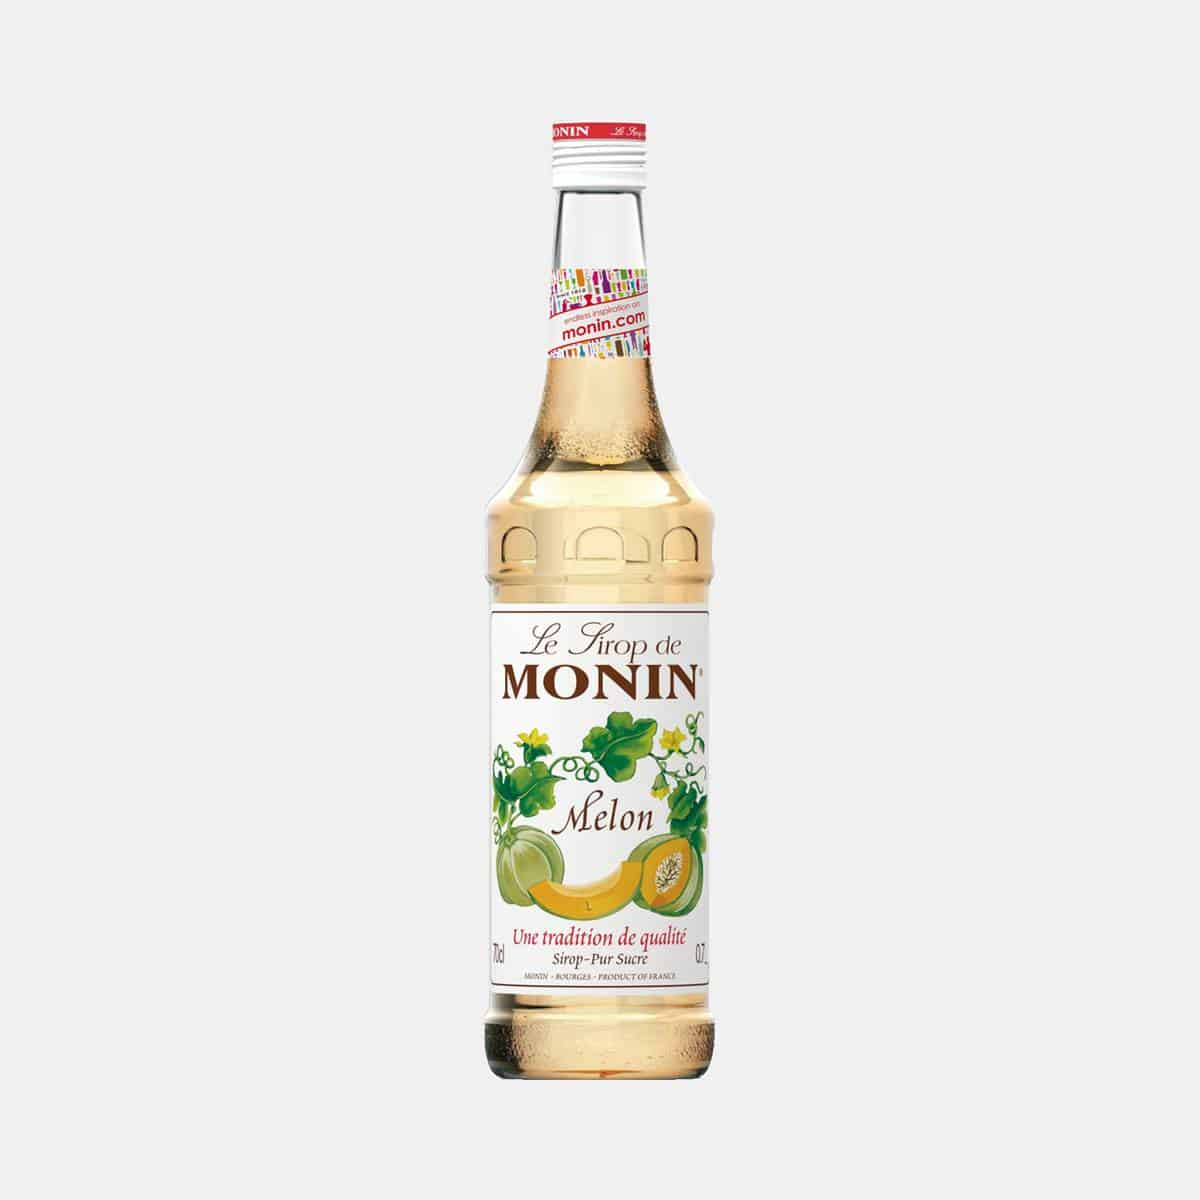 Monin Melon Syrup 700ml Glass Bottle